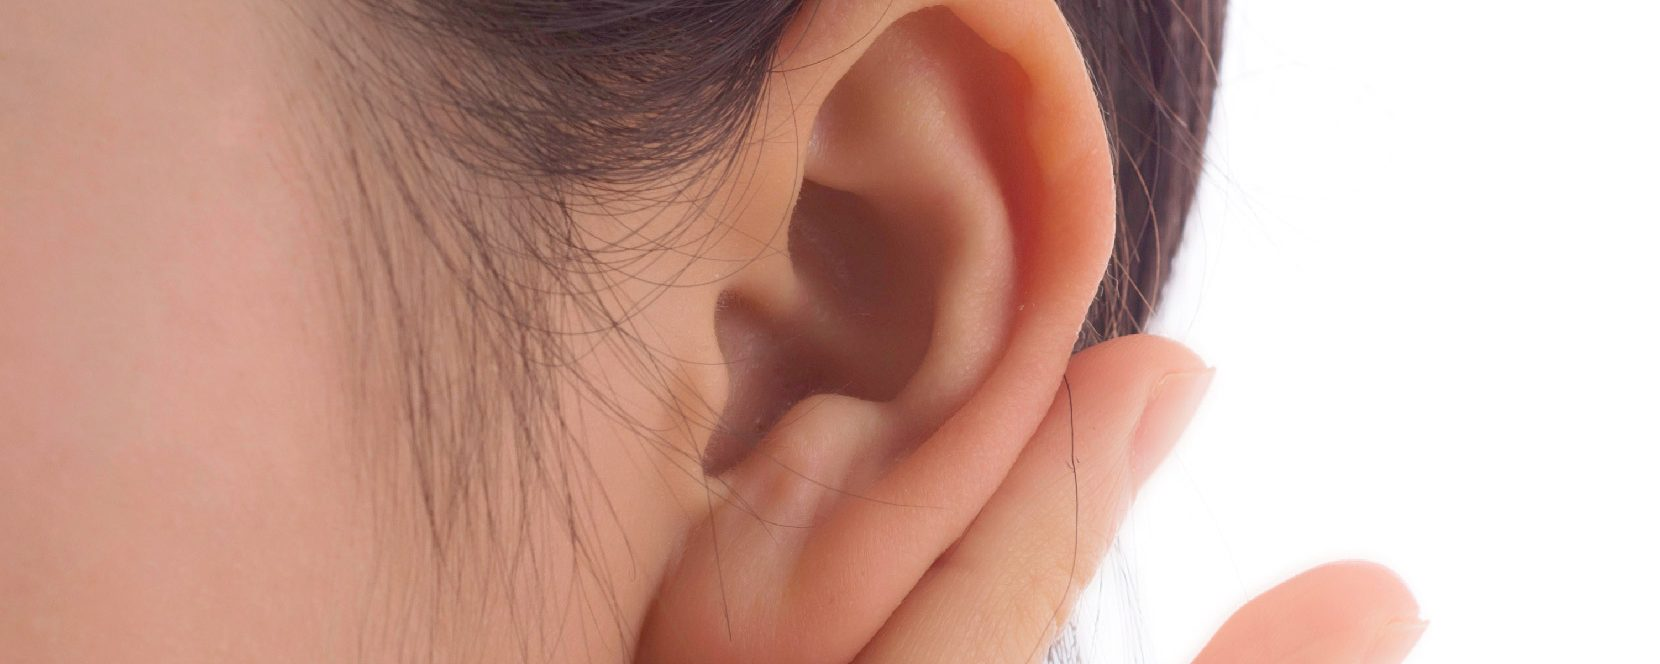 How the ear works?